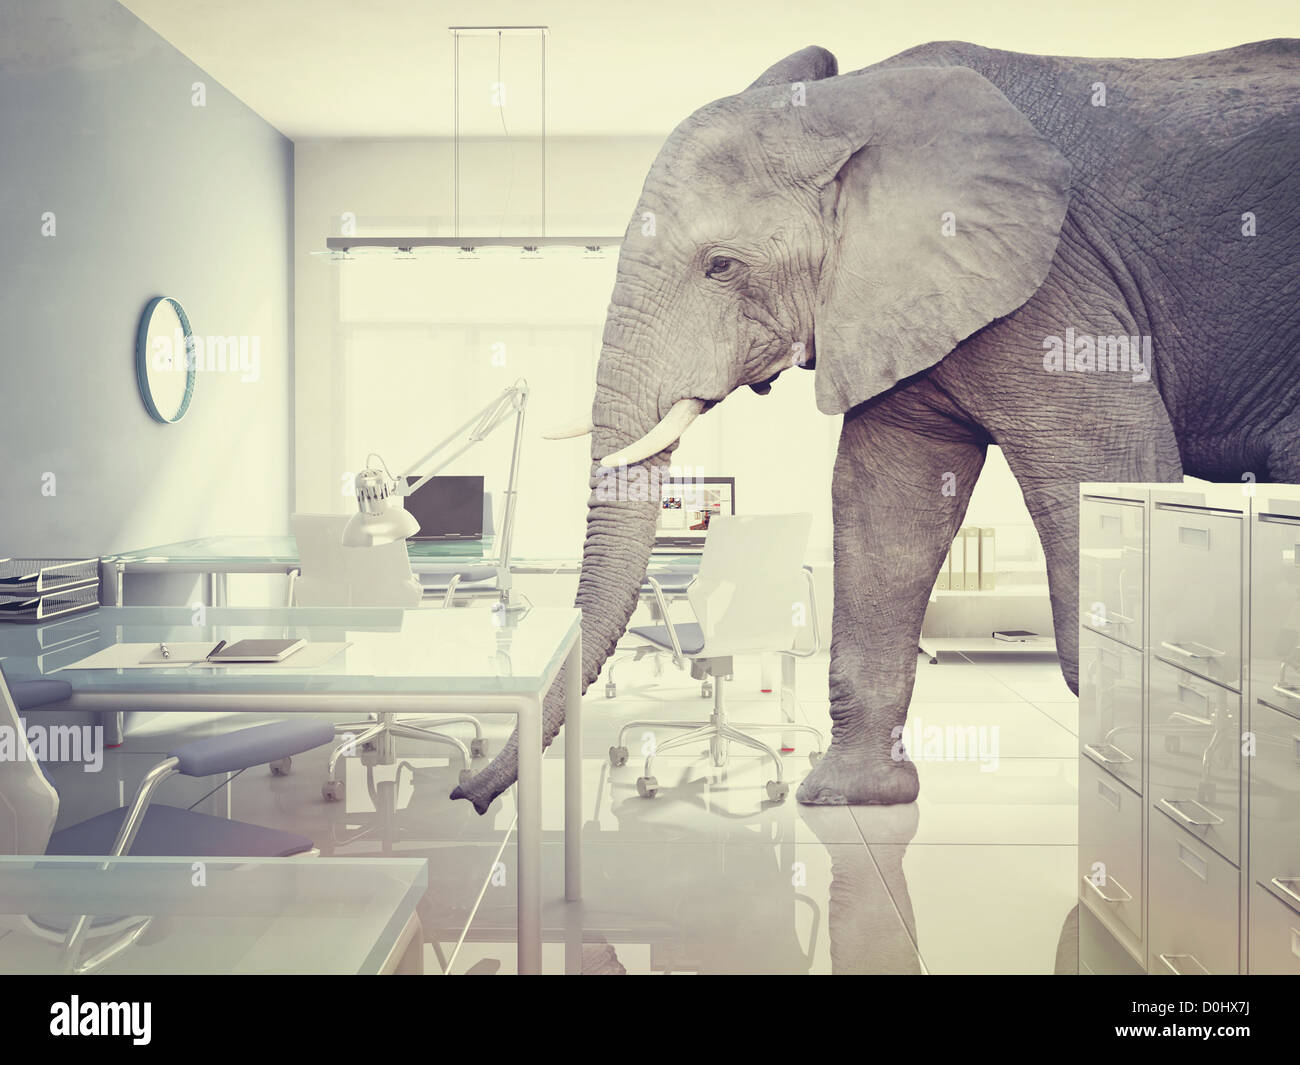 Elephant In The Room Stock Photos & Elephant In The Room Stock ...